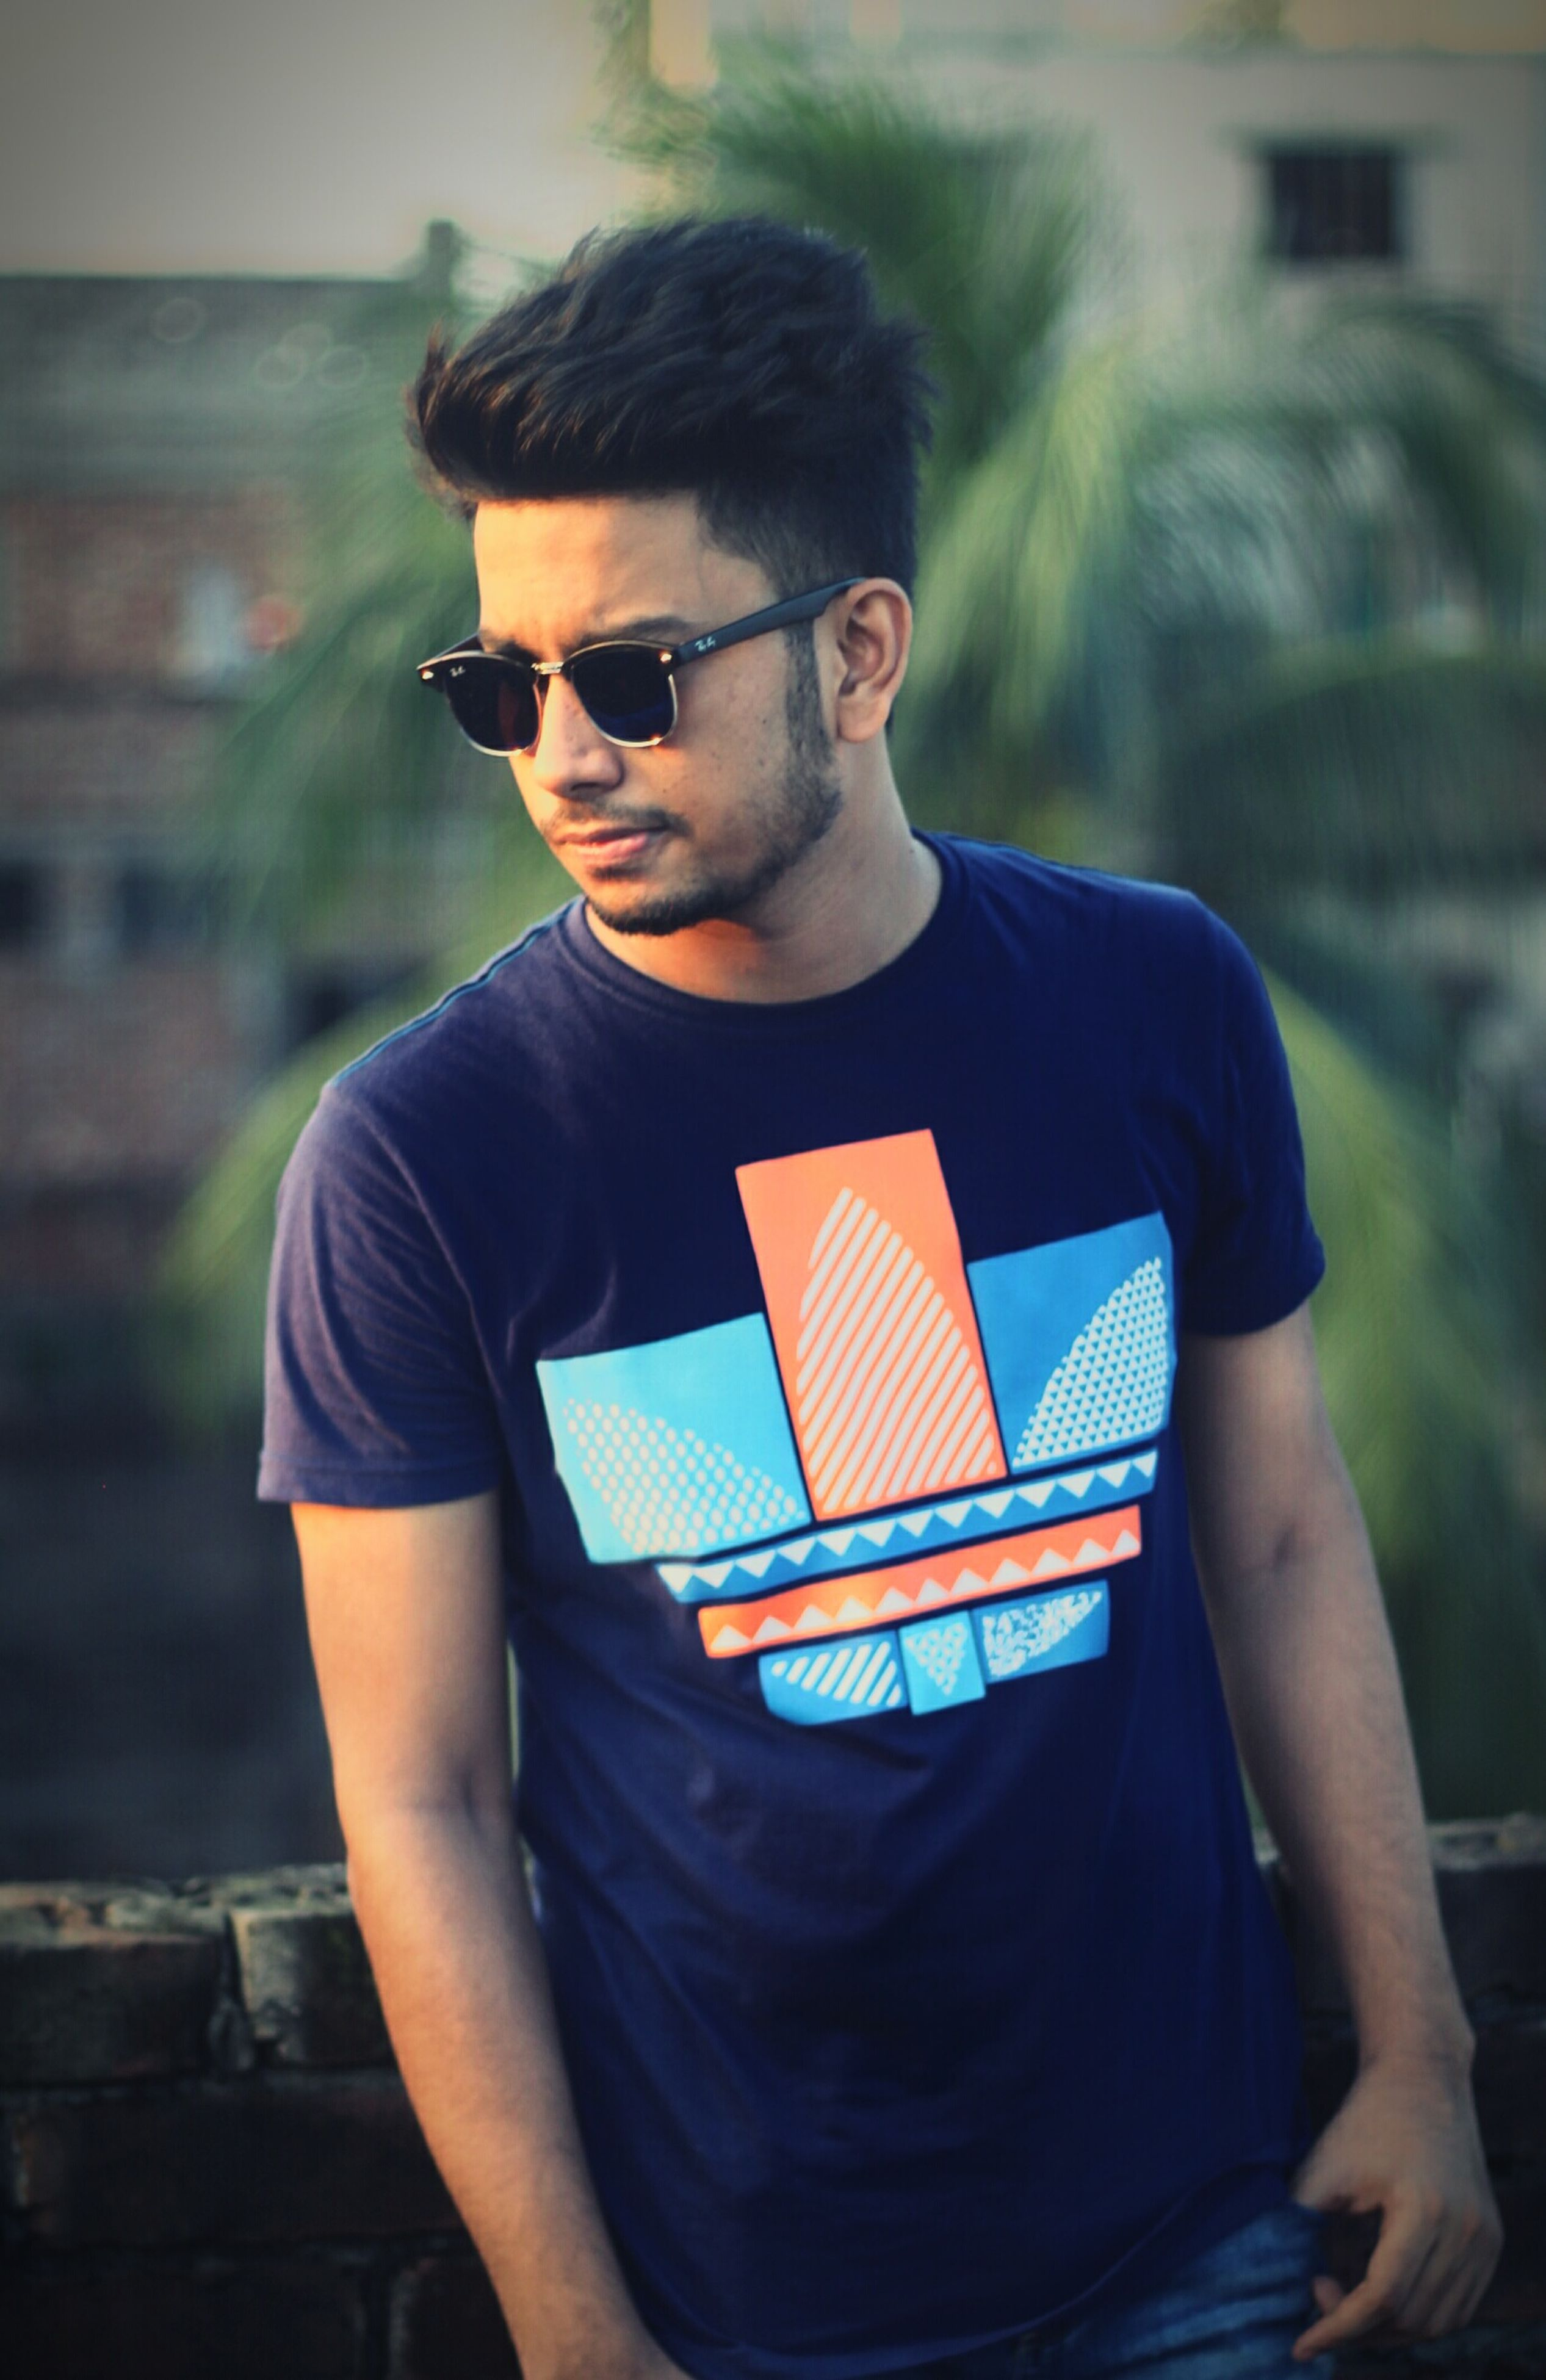 standing, young adult, focus on foreground, casual clothing, sunglasses, lifestyles, young men, leisure activity, front view, looking down, handsome, person, blue, attitude